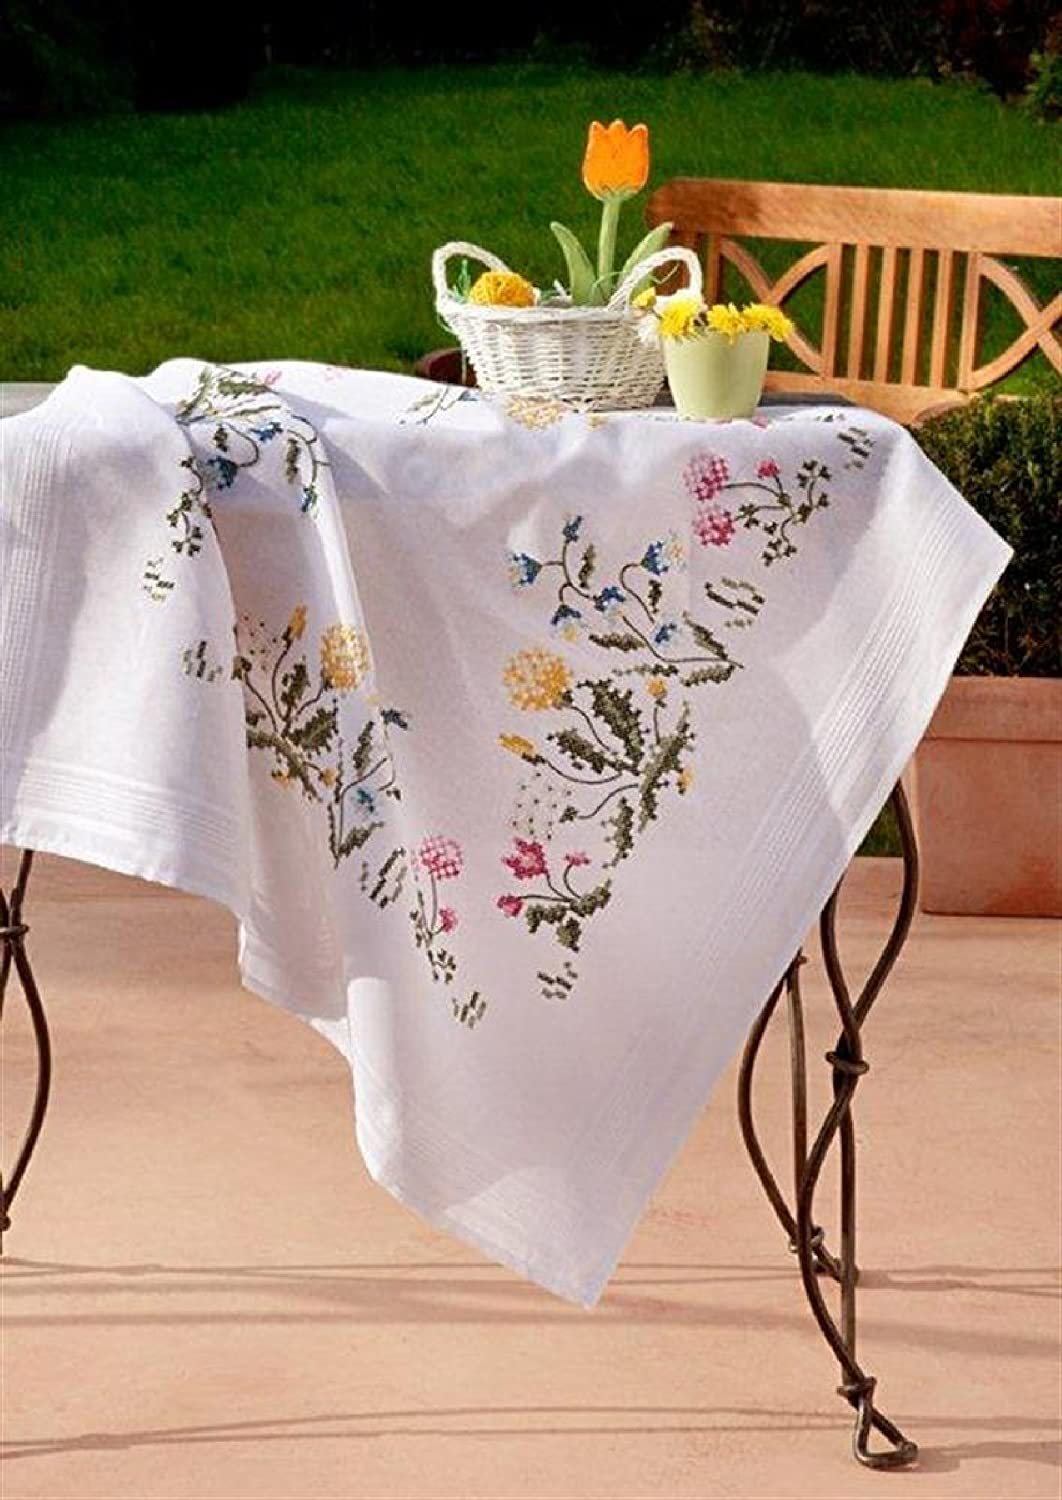 Bluebells /& Dandelions by Deco-Line Deco-Line Stamped Cross Stitch Tablecloth Kit